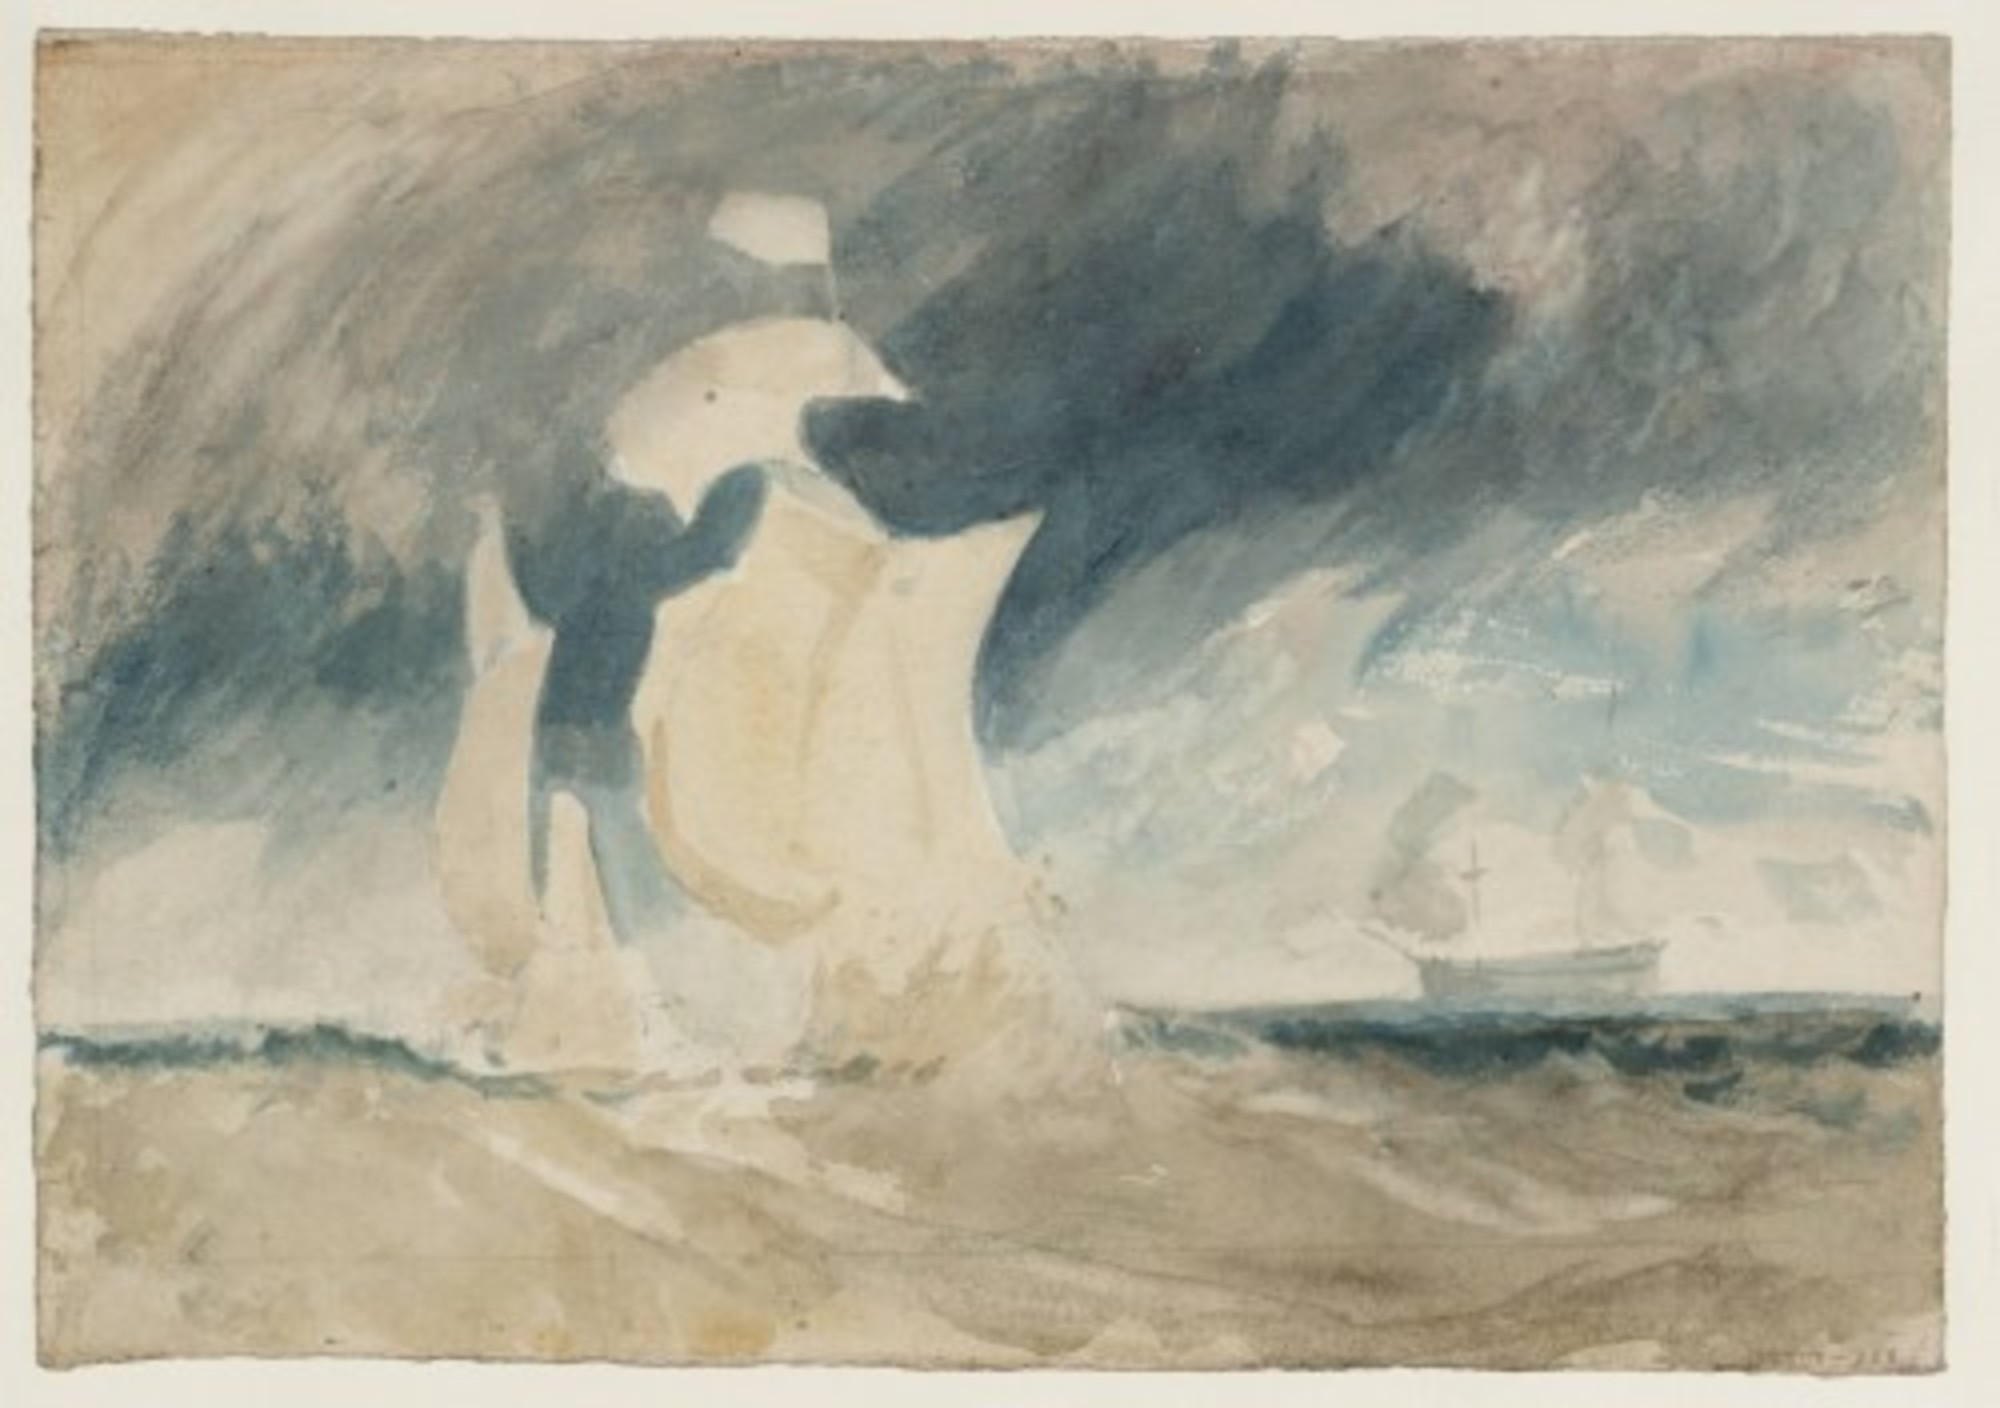 Study-for-Sheerness-1824.jpg